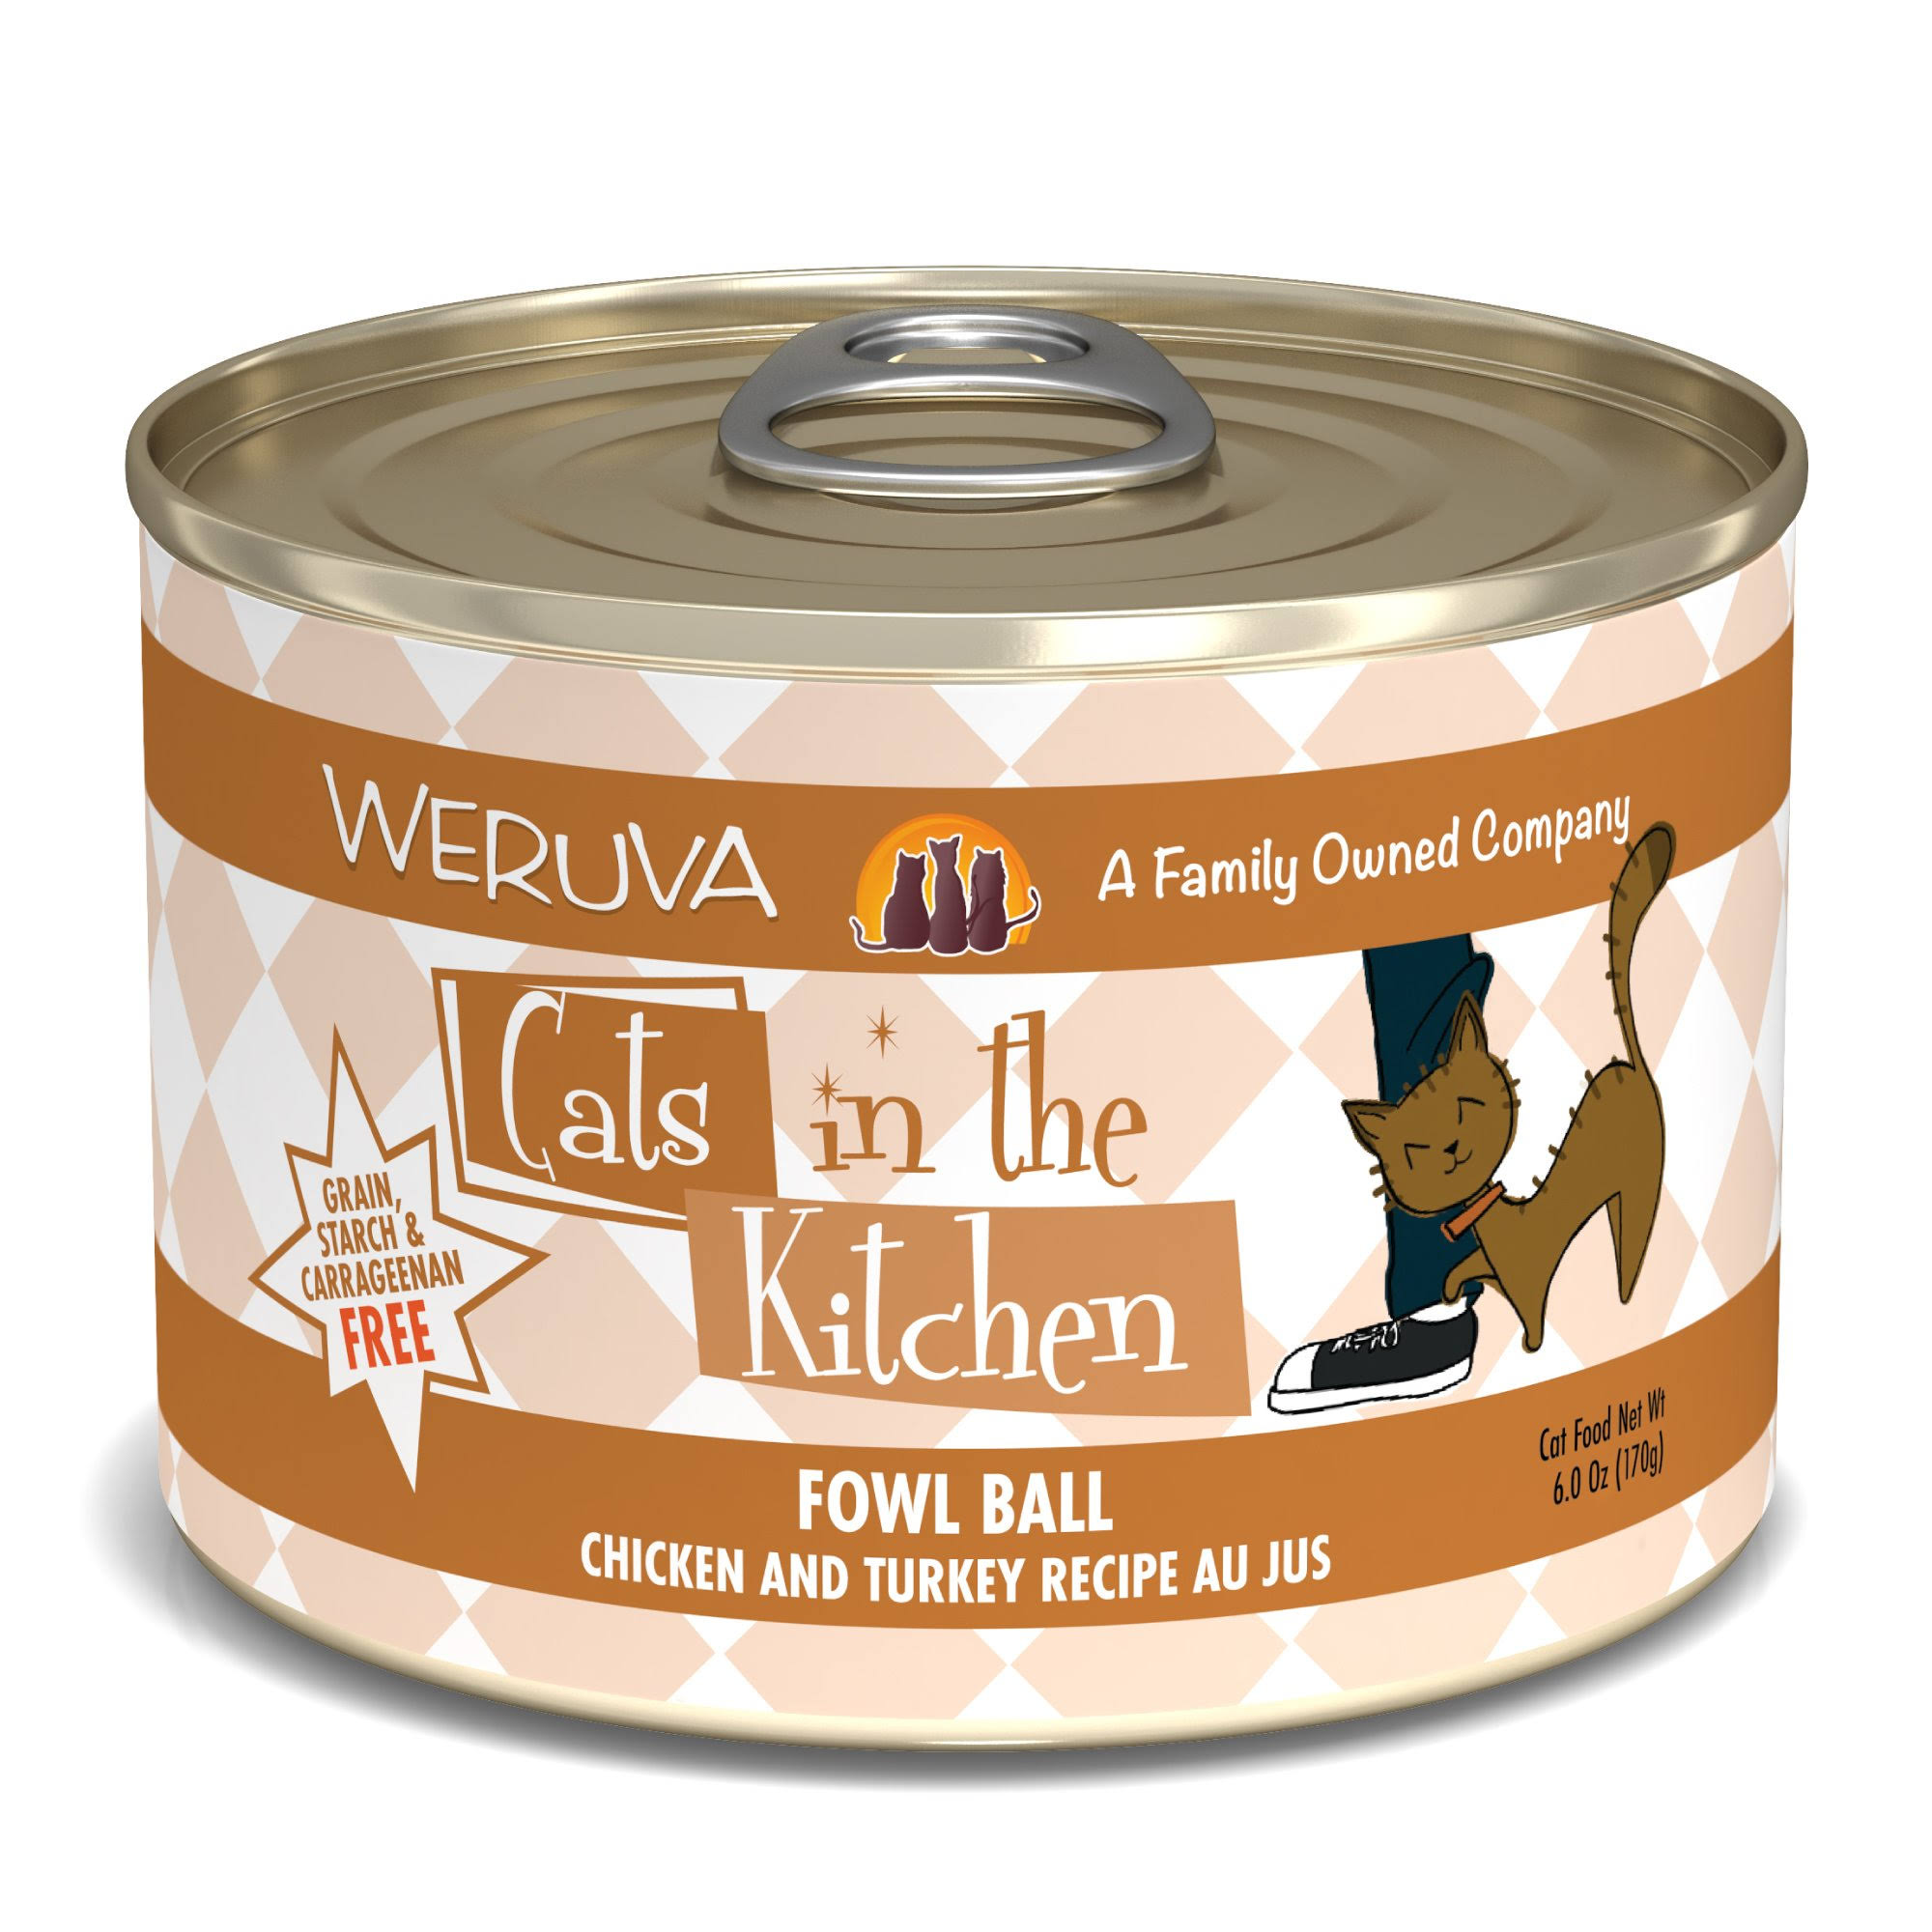 Weruva Cats in the Kitchen Fowl Ball Cat Food - Chicken and Turkey Au Jus, 6oz